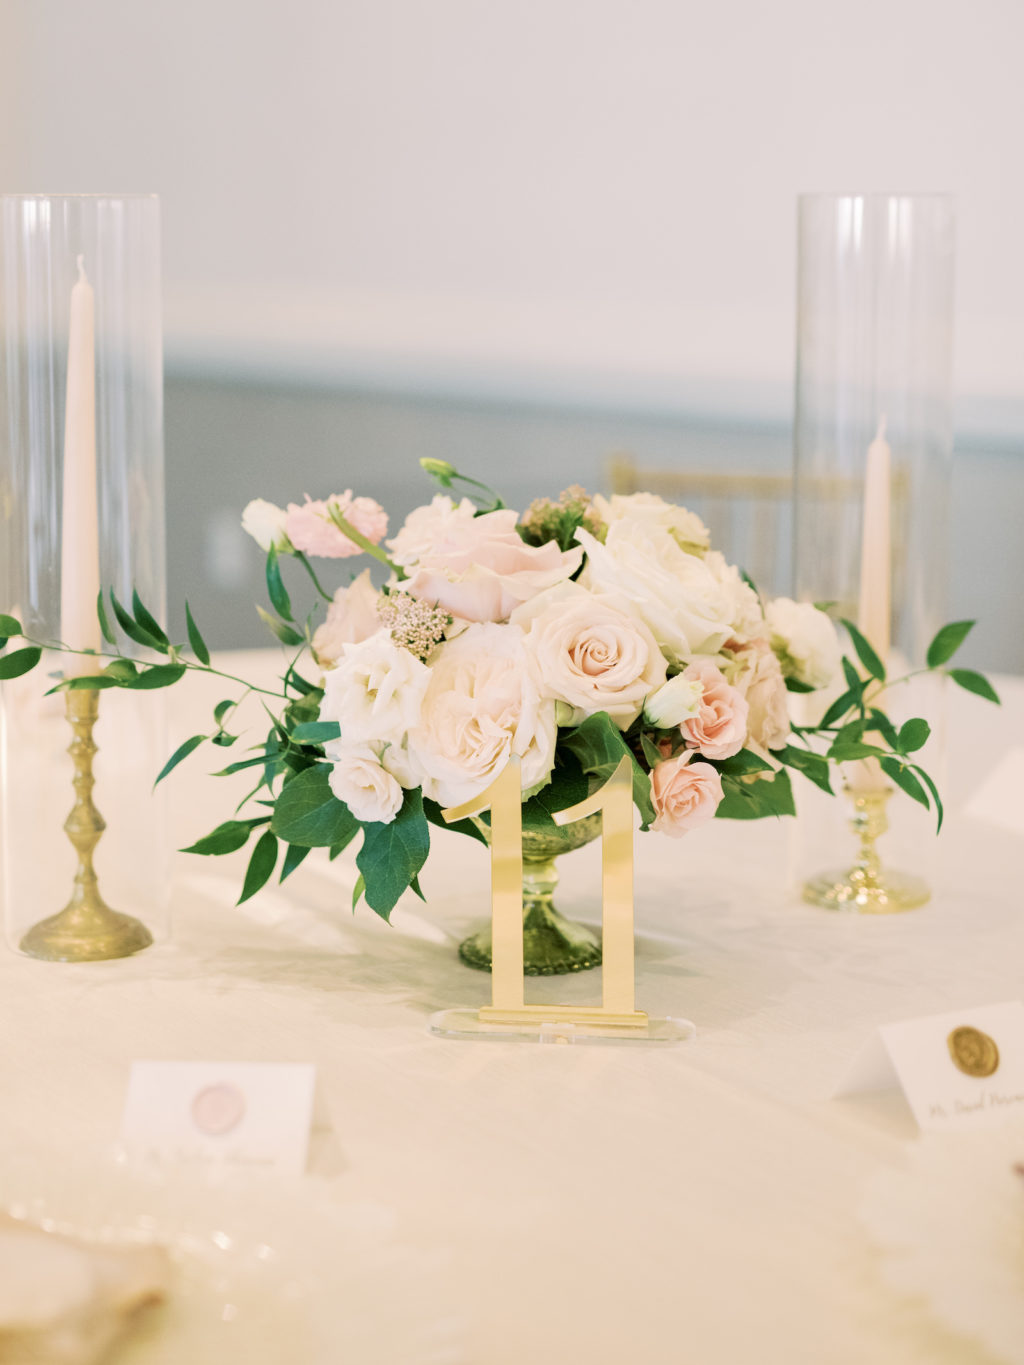 Timeless Romantic Wedding Reception Decor, Low Floral Centerpiece with Blush Pink and Ivory Roses, Greenery, Gold Candlesticks and Acrylic Table Number | Tampa Bay Wedding Planner Special Moments Event Planning | Wedding Rentals Kate Ryan Event Rentals